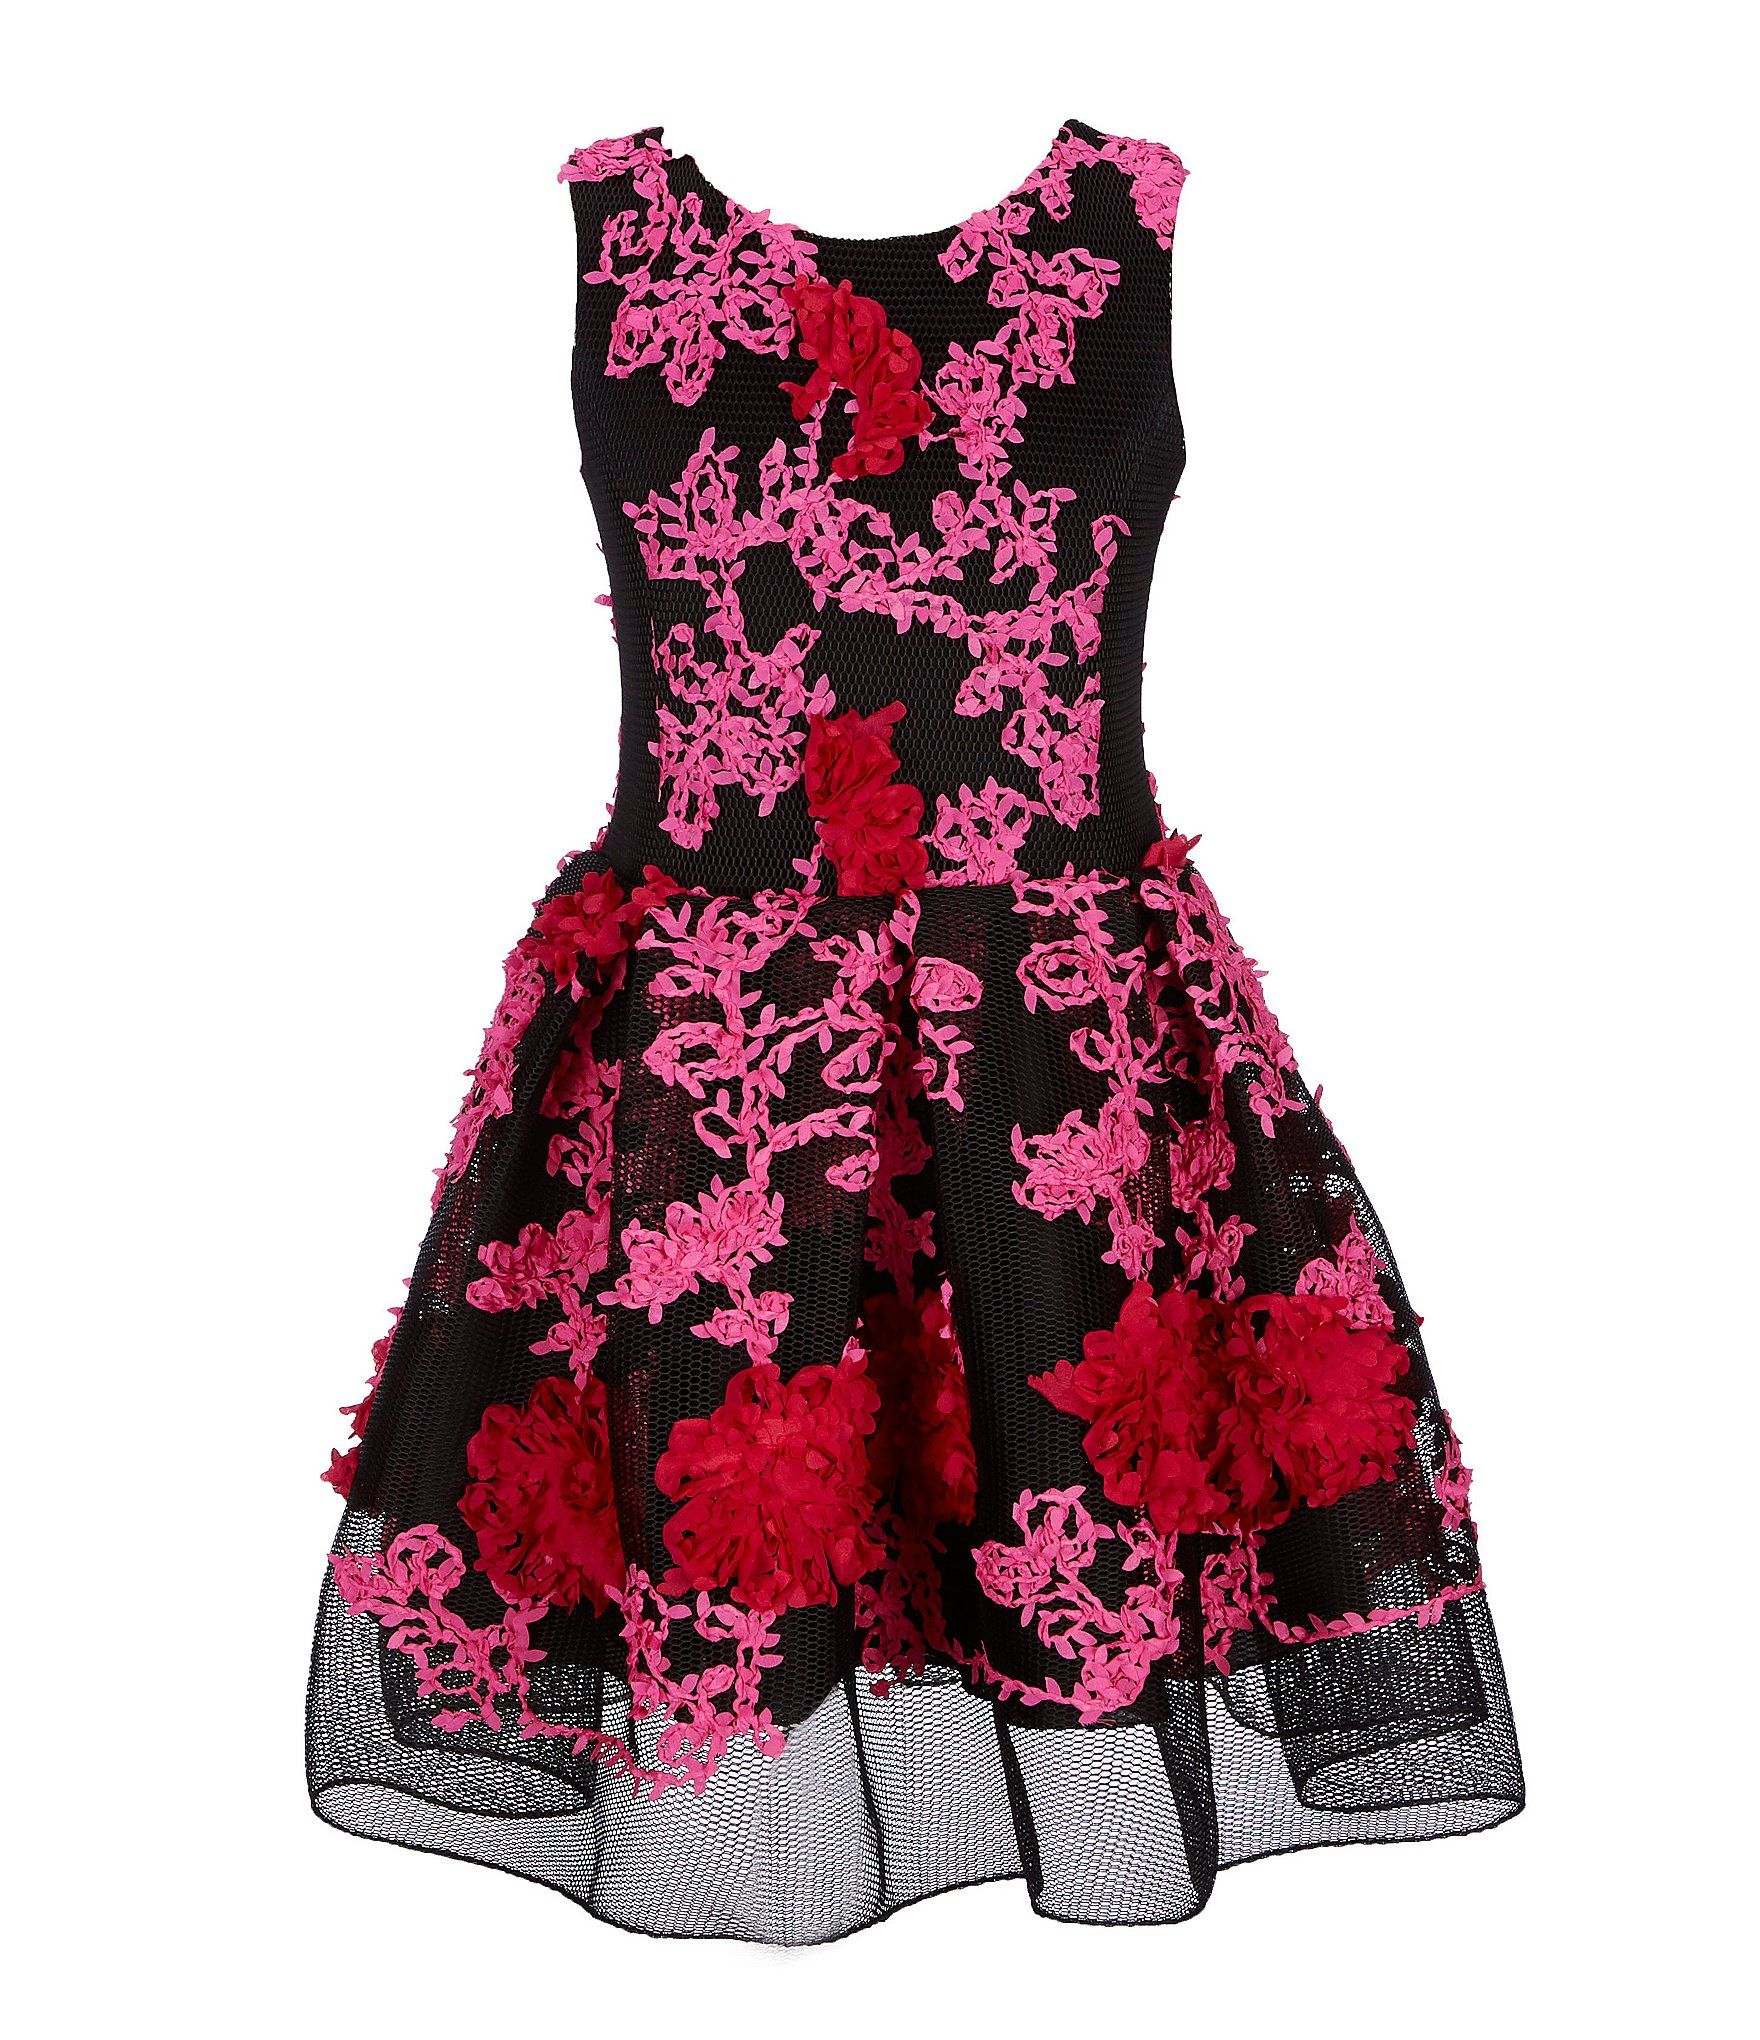 8b6453992d8a Shop for Zoe Big Girls 7-16 Floral Embroidered Mesh Fit-And-Flare Dress at  Dillards.com. Visit Dillards.com to find clothing